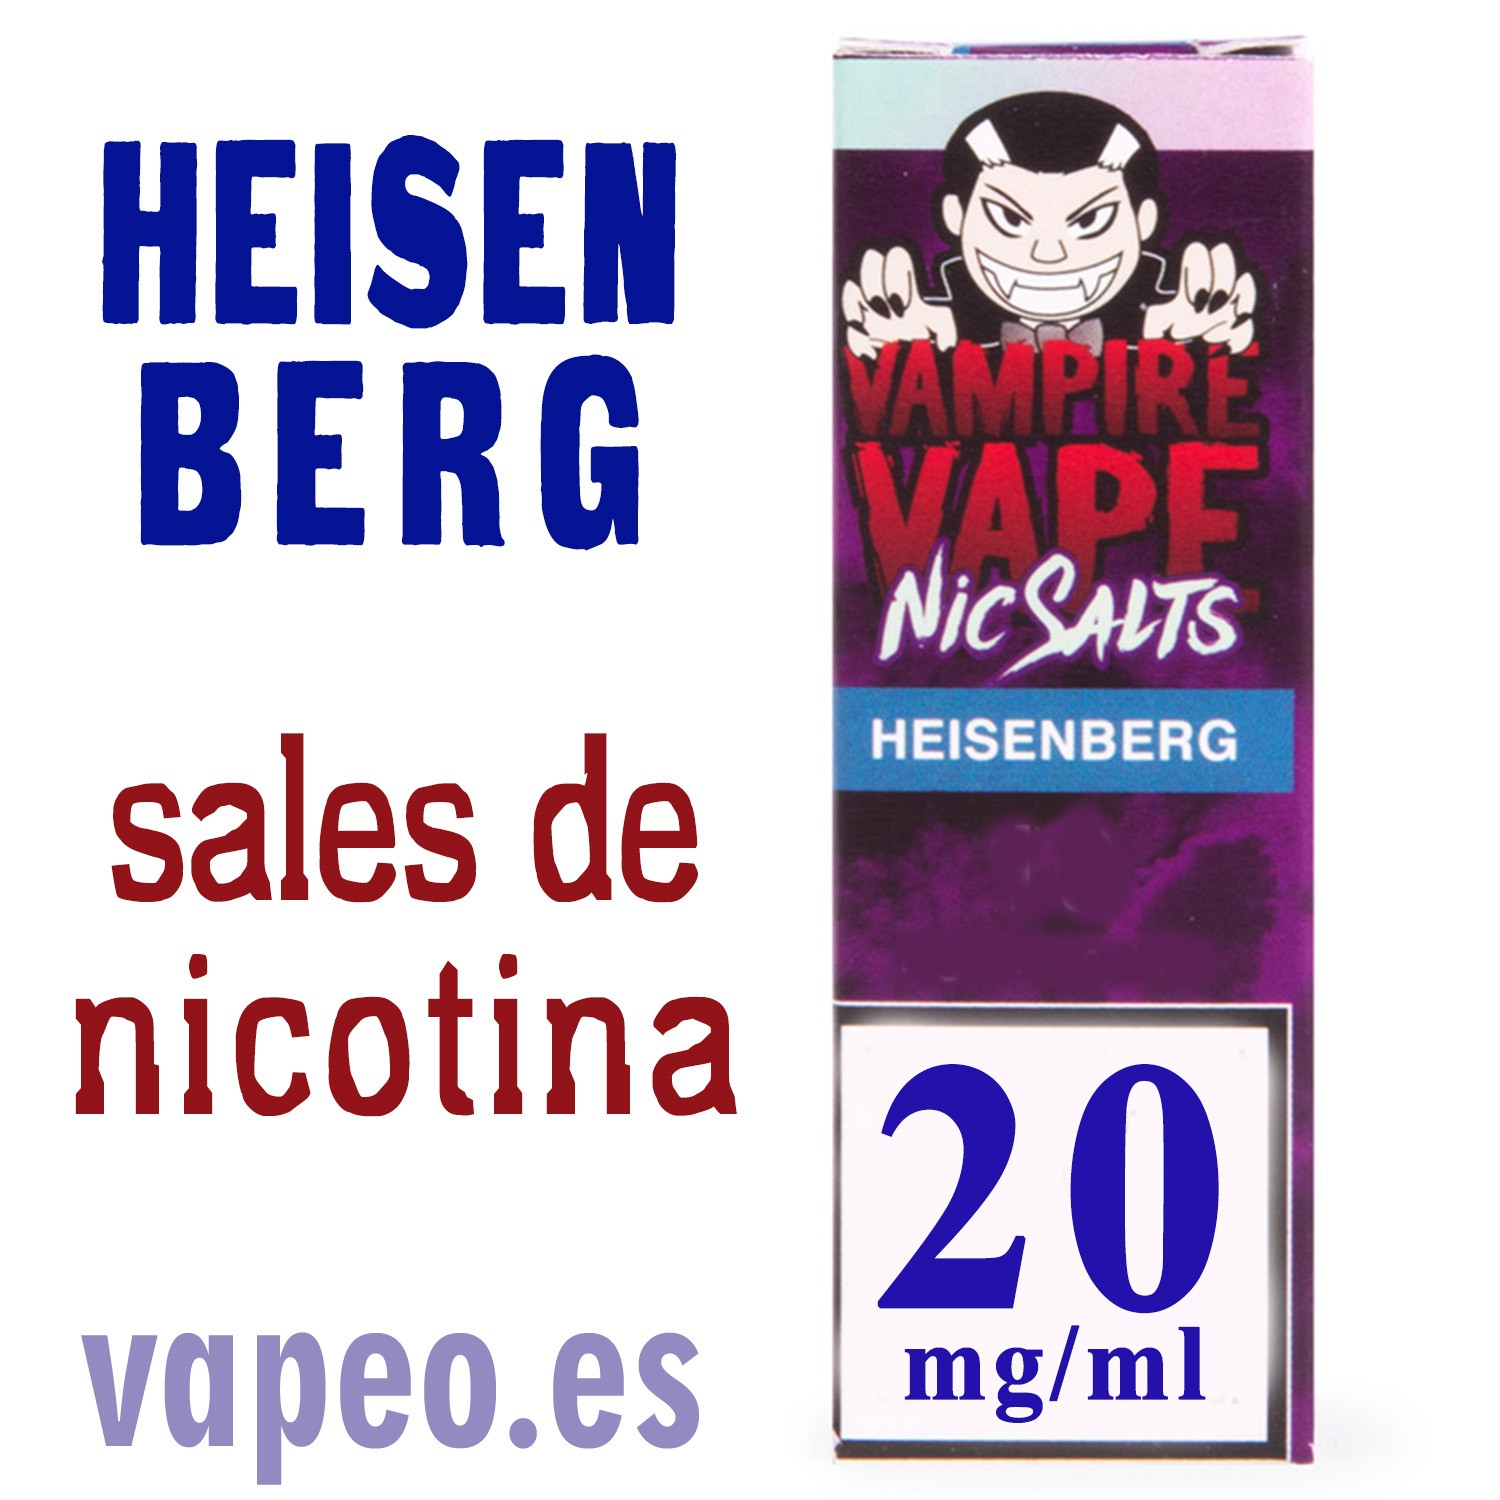 HEISENBERG NIC SALT ELIQUID 10ML 20mg